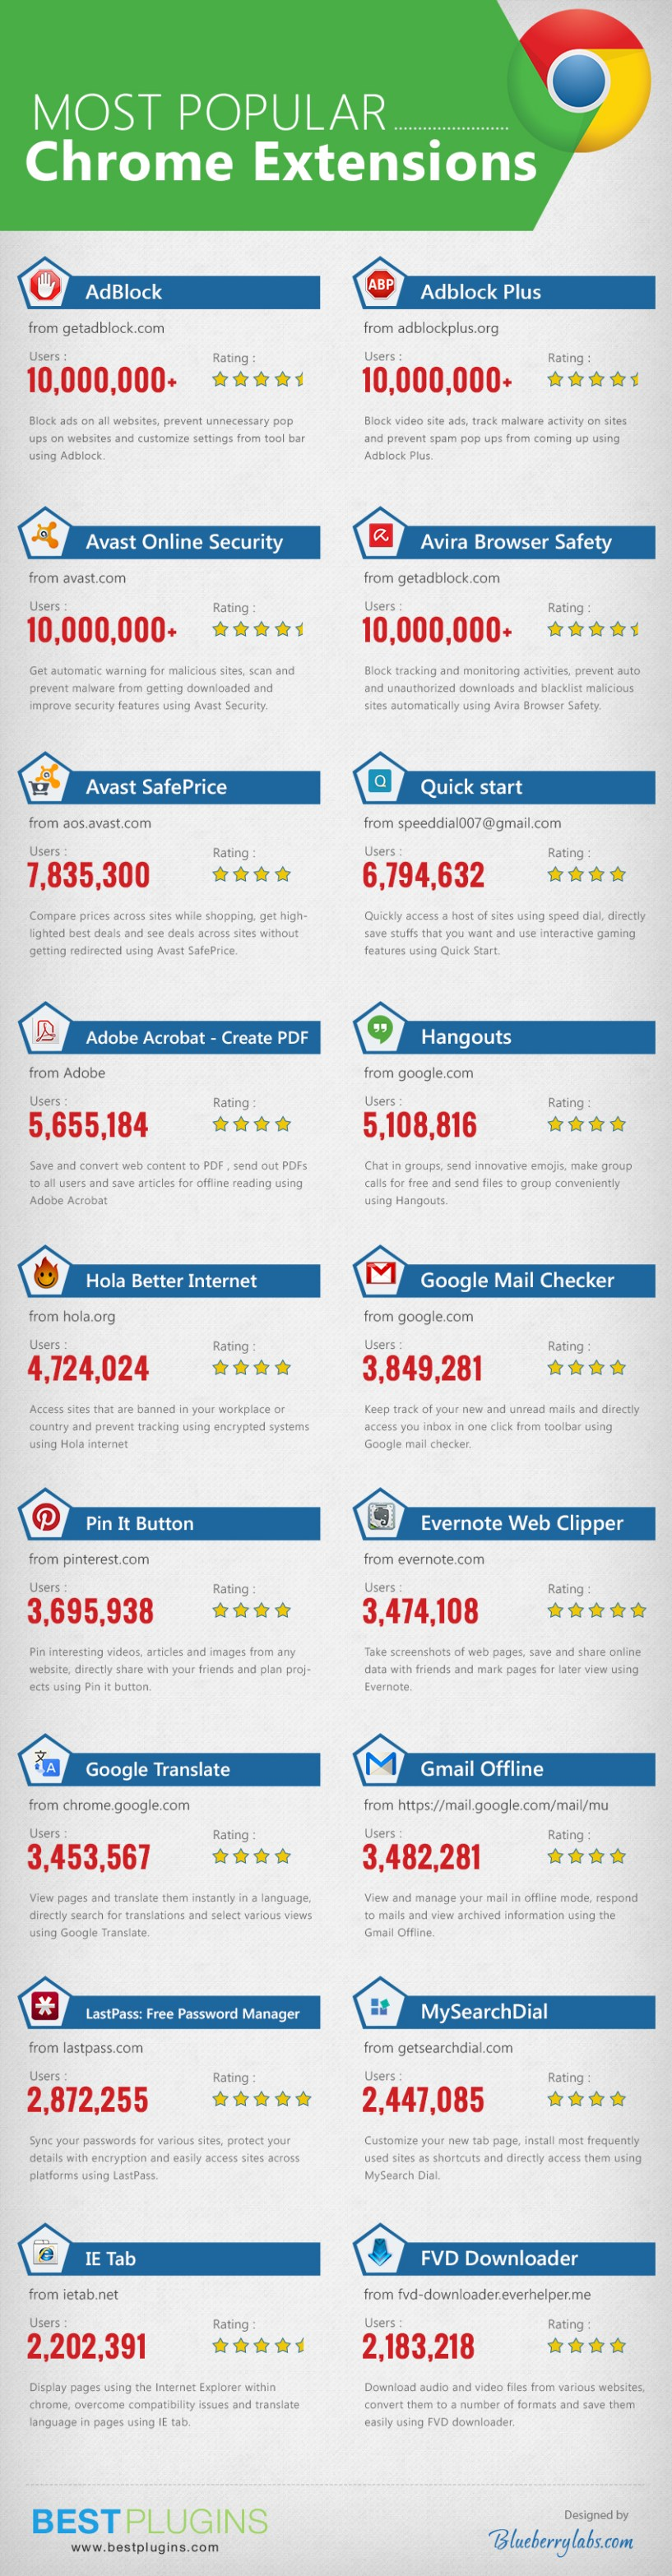 Most popular Chrome Extensions